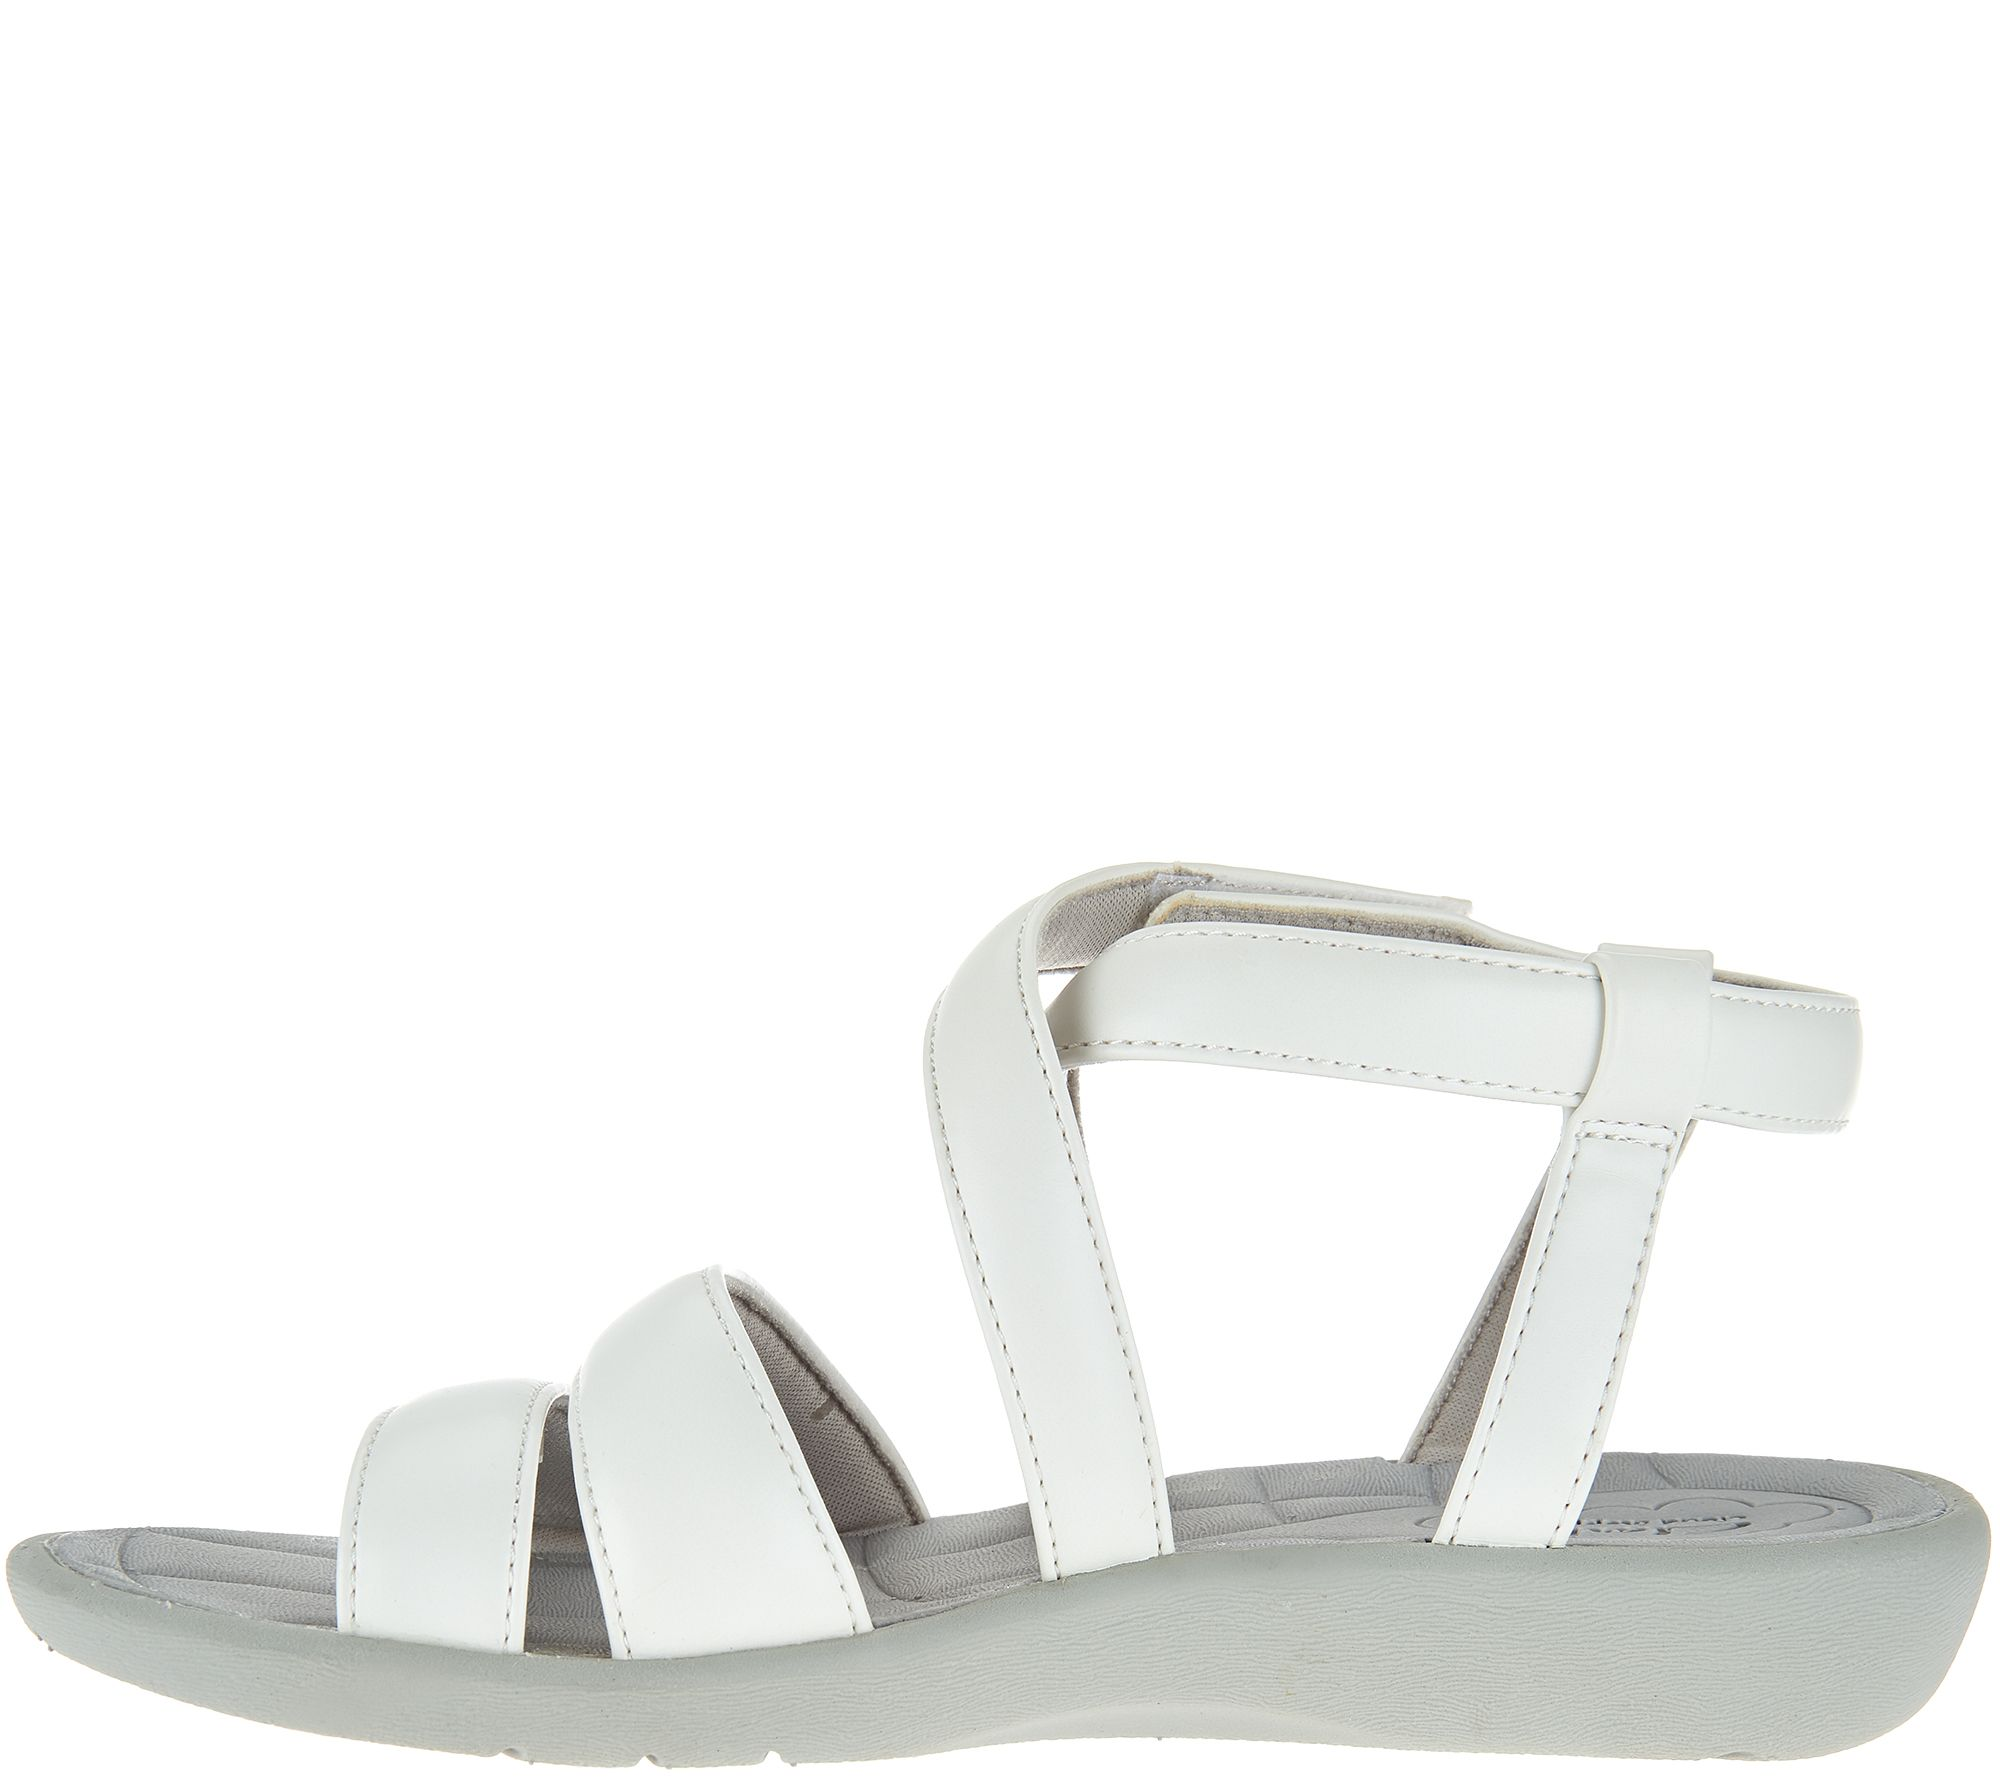 Sillian Sandals Steppers As Clarks Strap Cloud Sport Is Multi FFCq8RTw